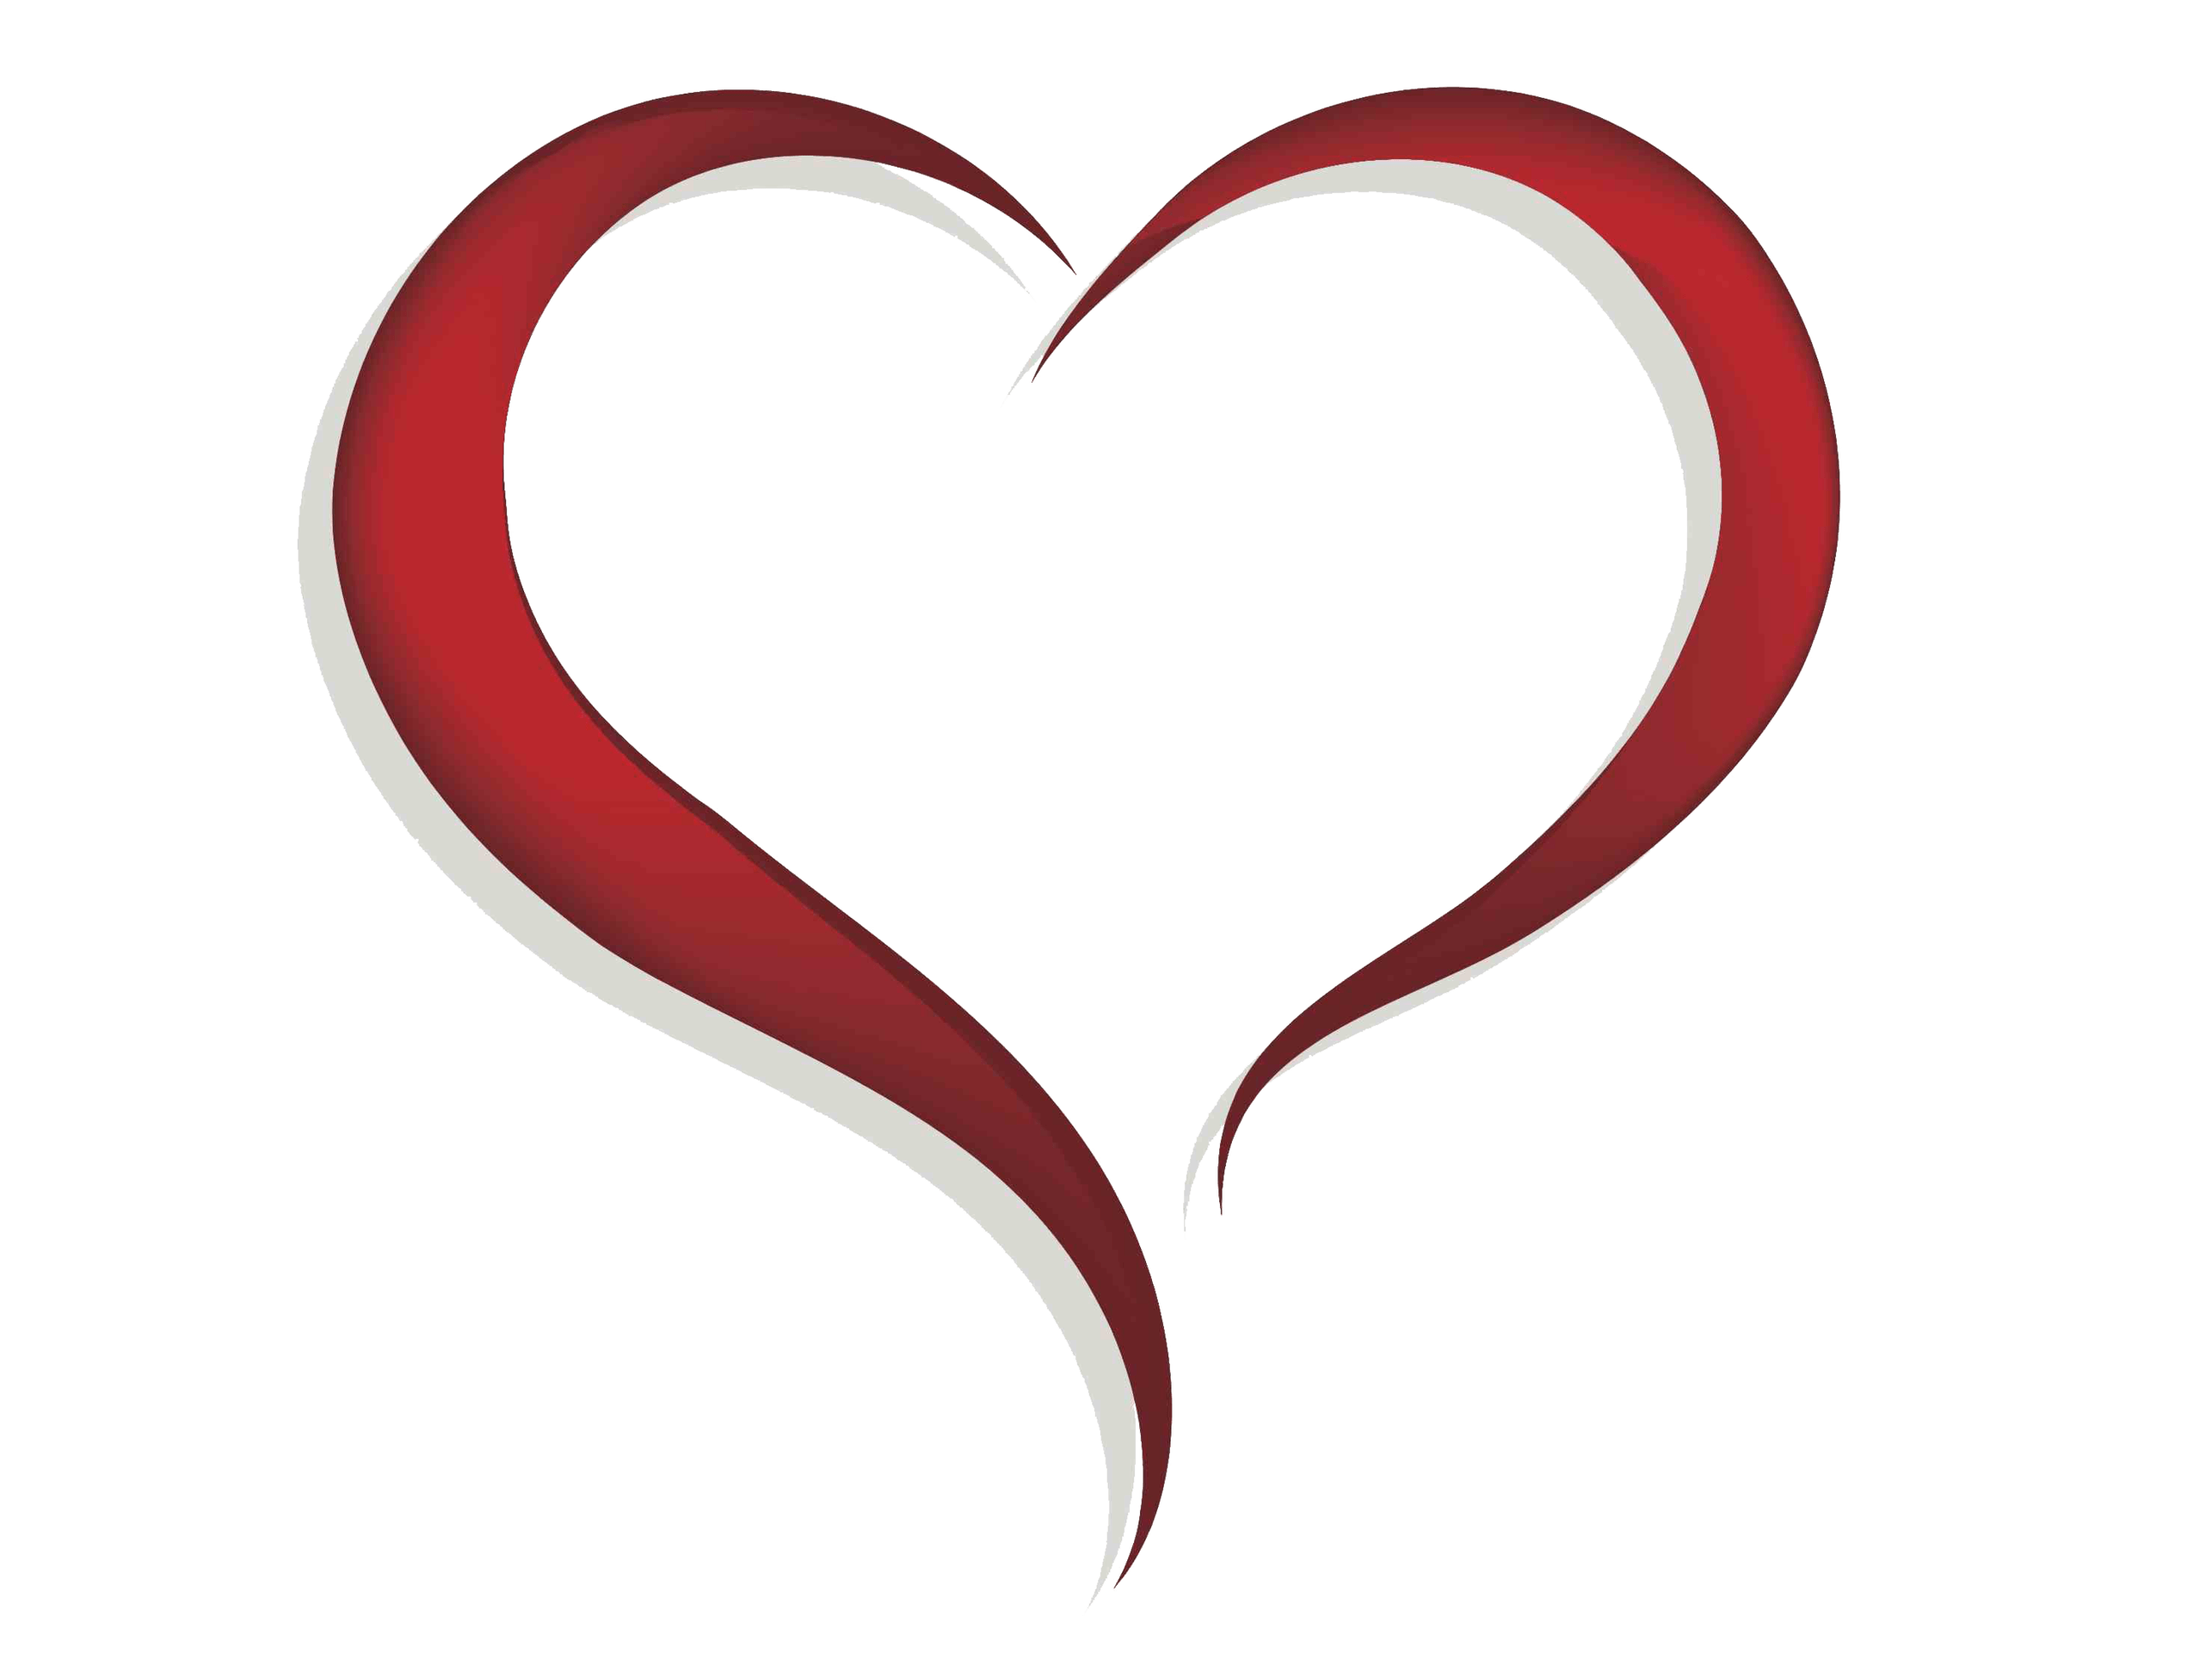 Open heart clipart clip freeuse La Habra, CA - Official Website clip freeuse